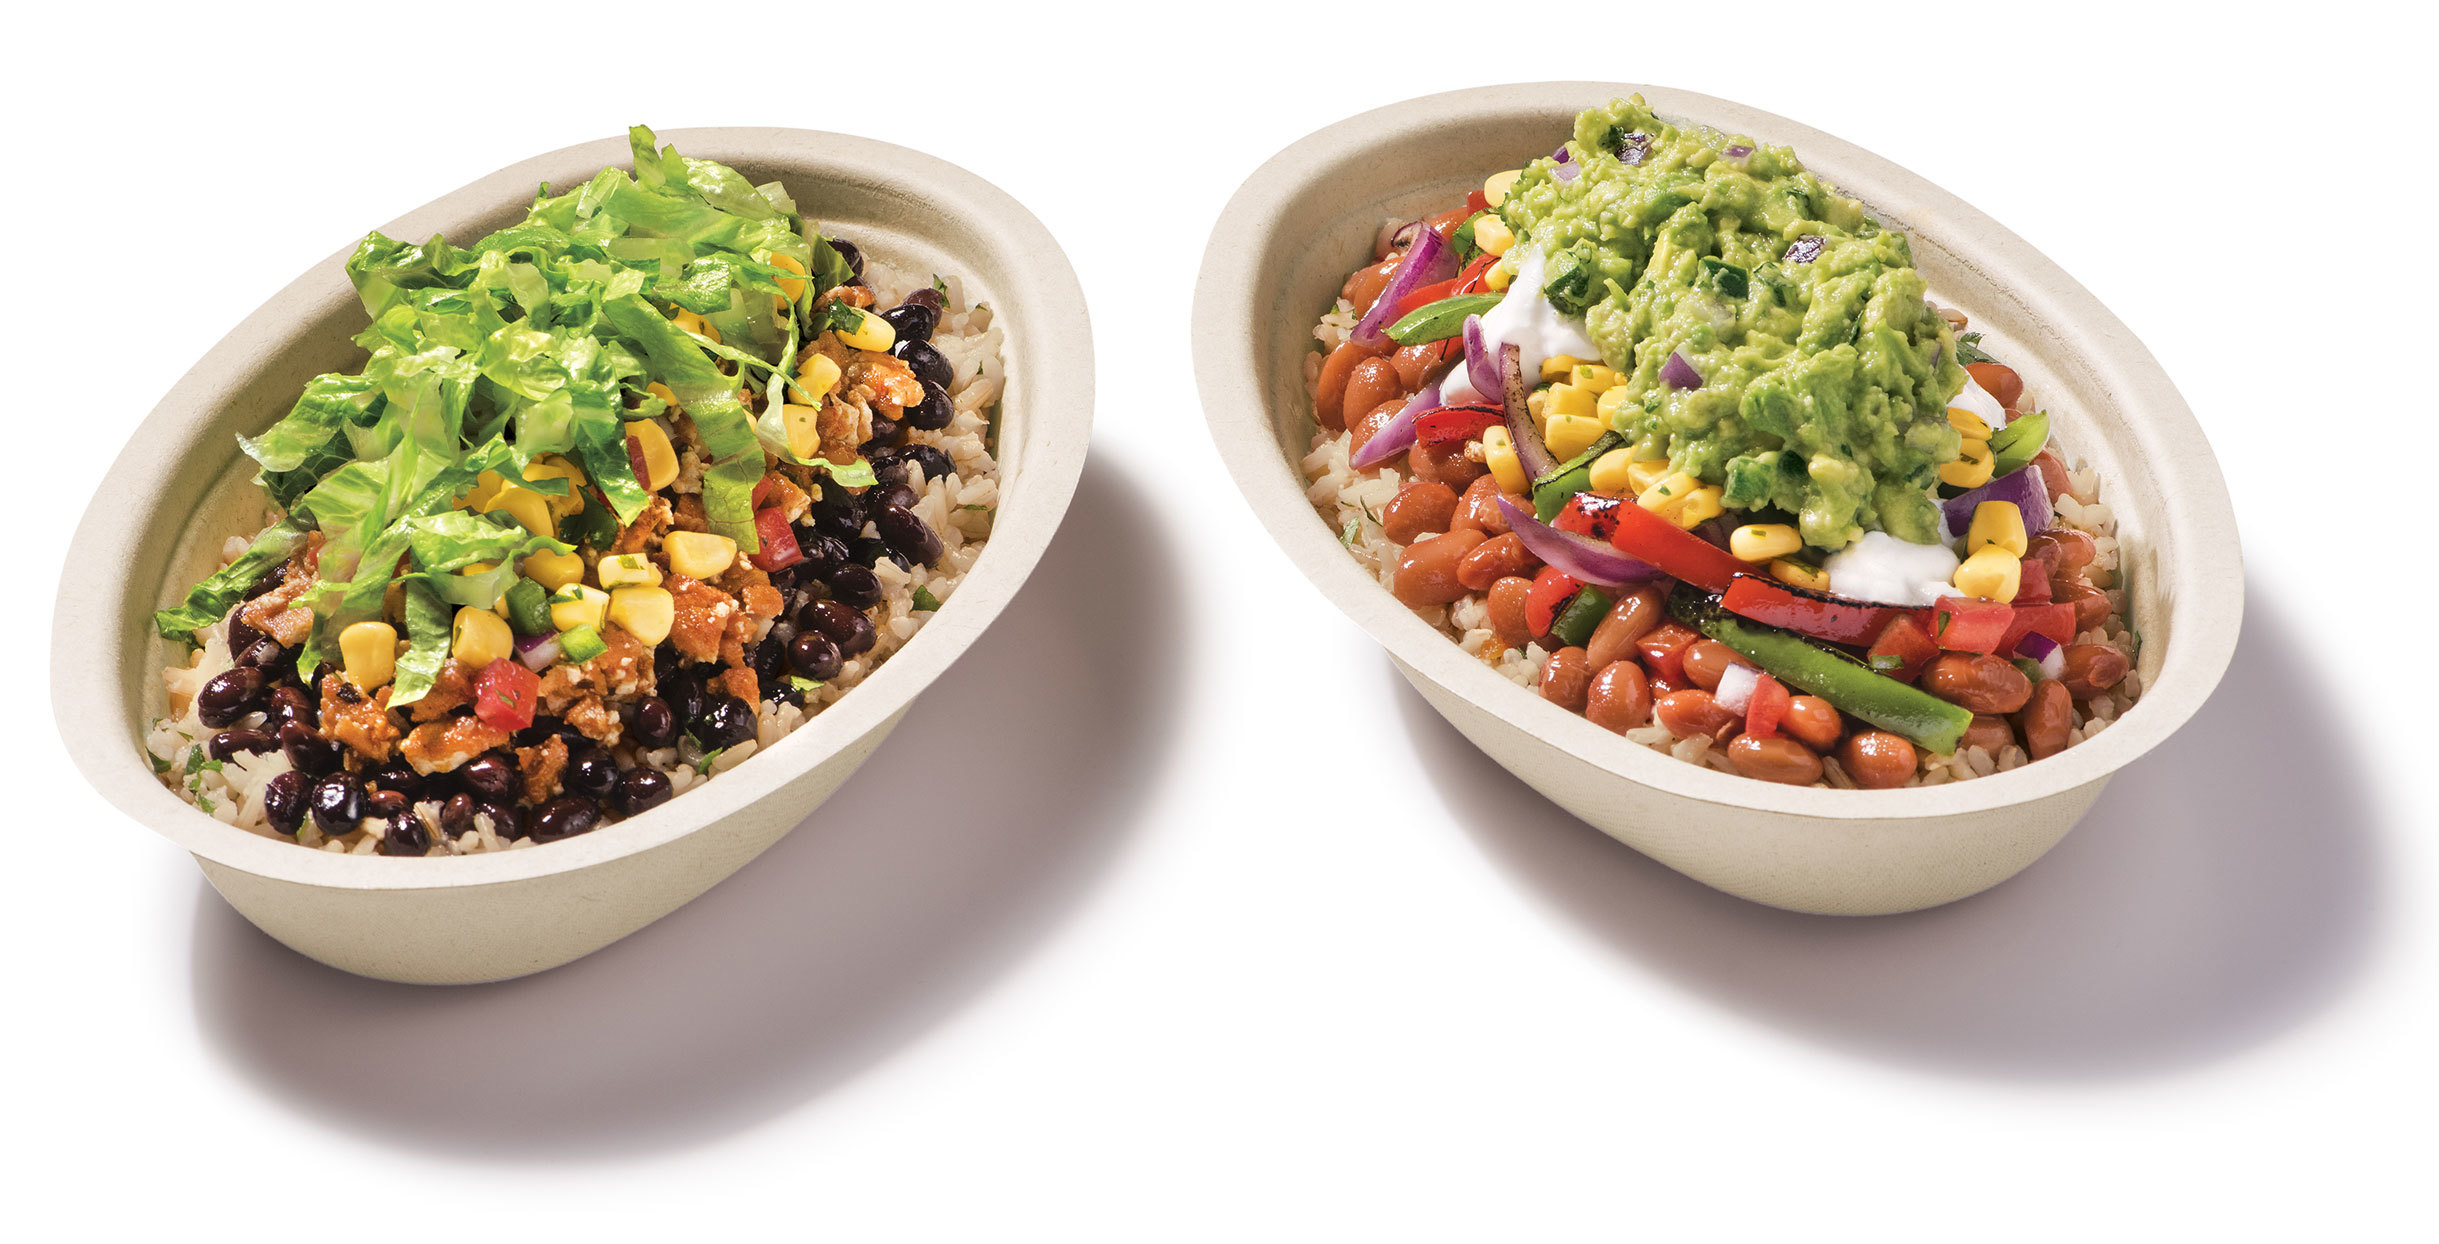 2 burrito bowls from Chipotle